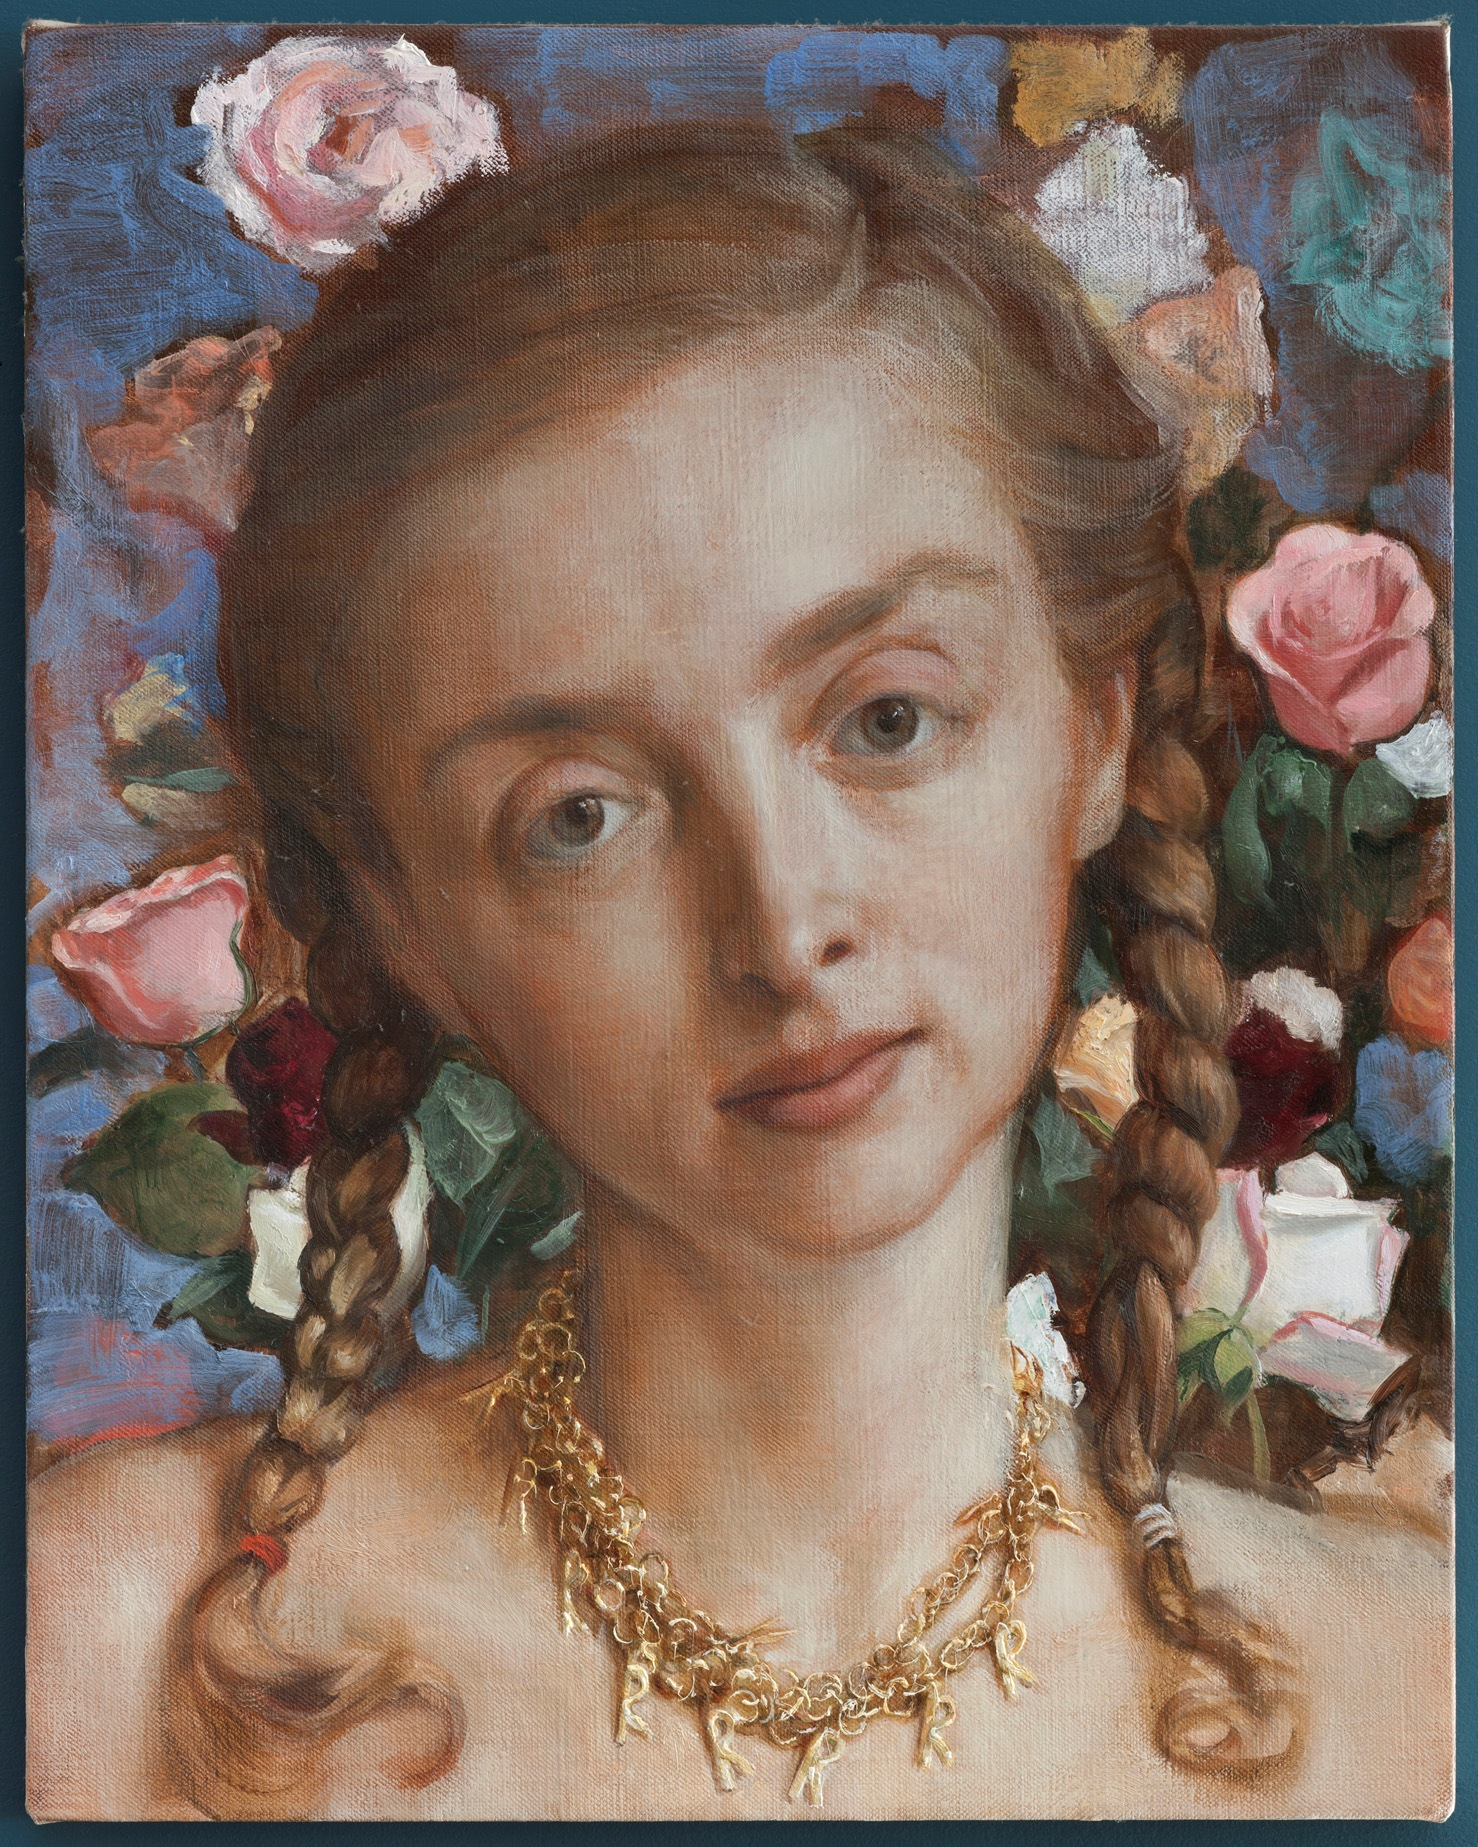 Rachel in the Garden, 2003          Olio su tela /Oil on canvas           50.8 x 40.6 cm / 20 x 16 inches Private Collection © John Currin. Courtesy Gagosian Gallery. Photography by Rob McKeever